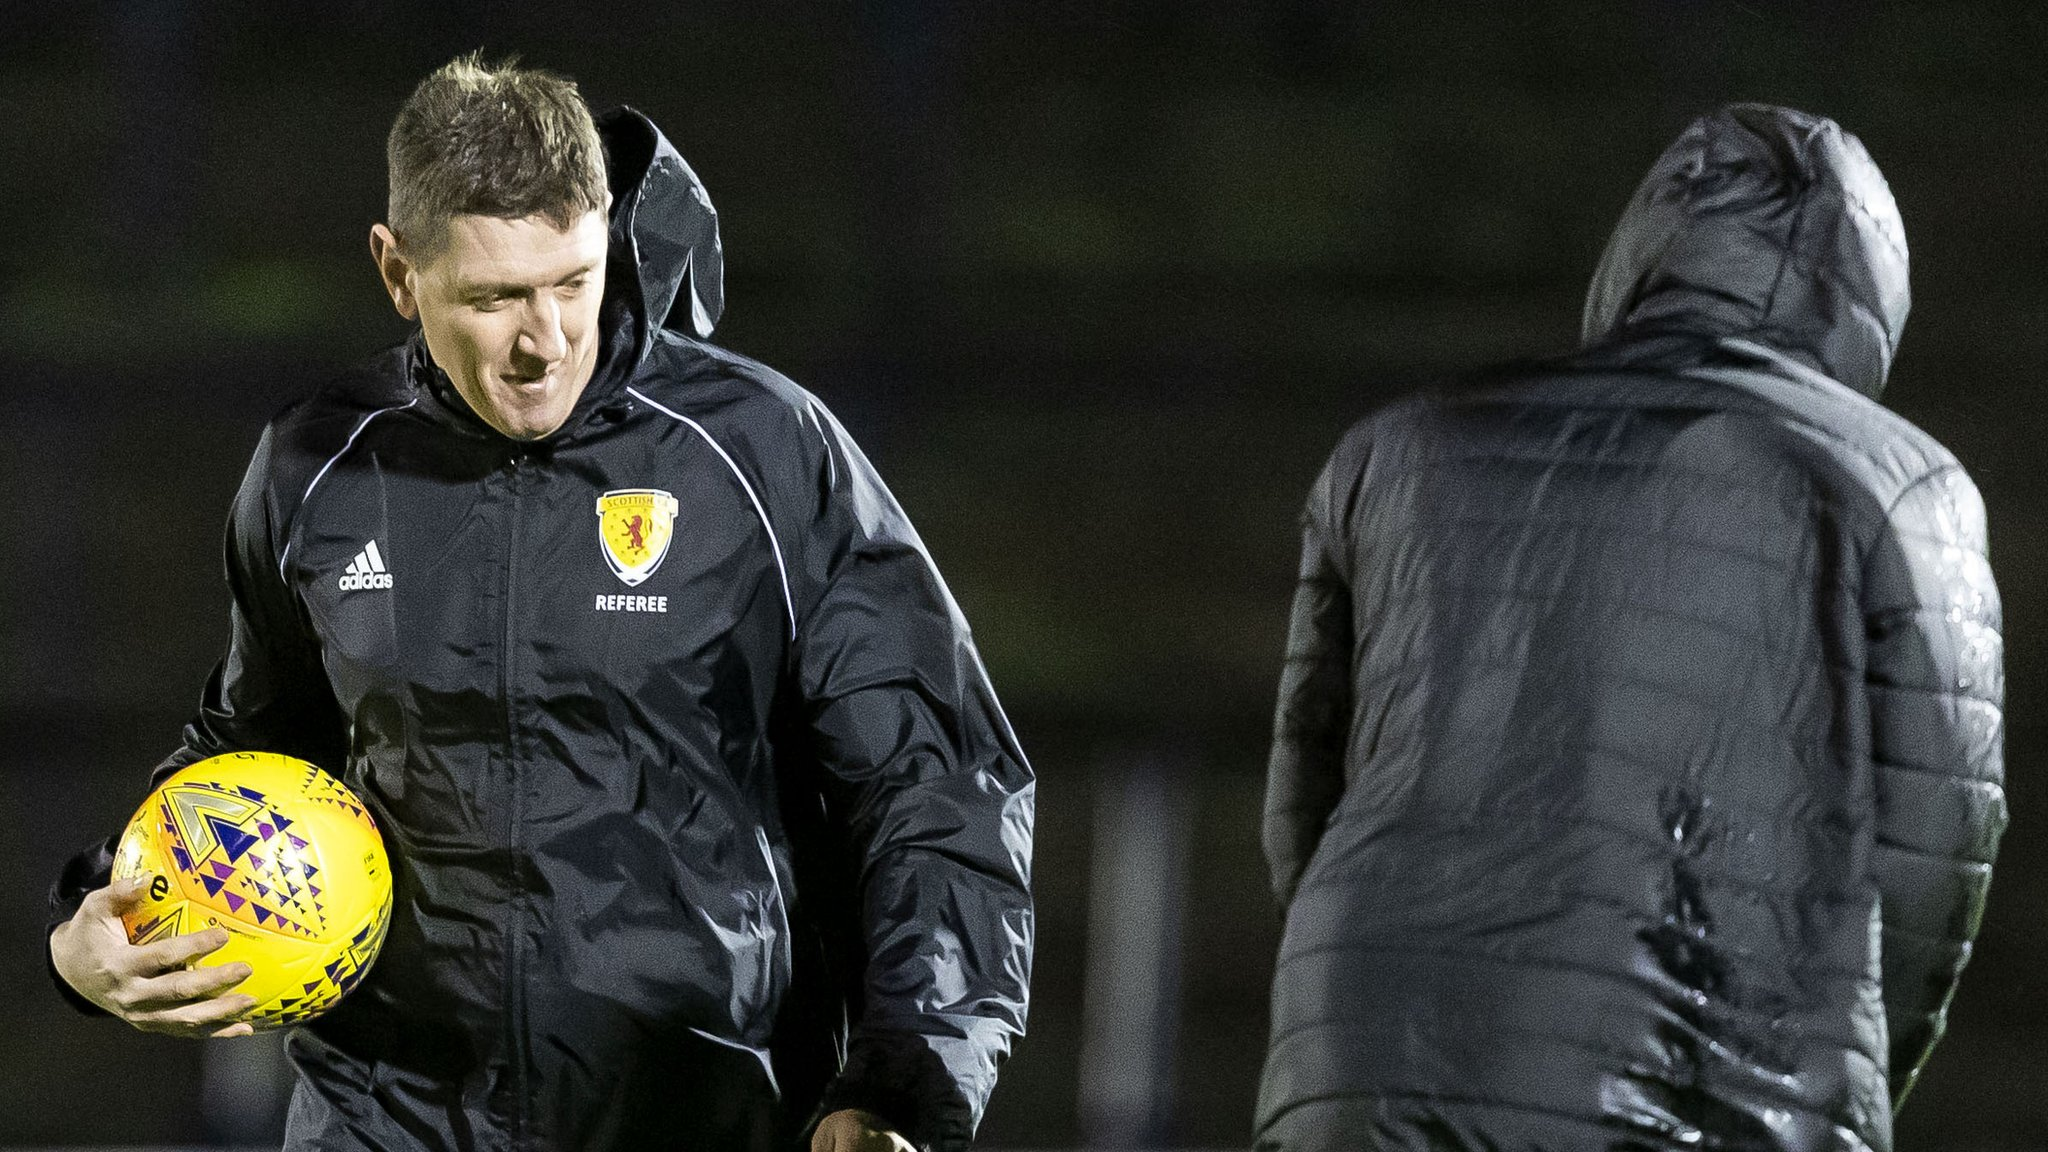 Ayr Utd v Inverness CT: Scottish Championship game postponed due to weather